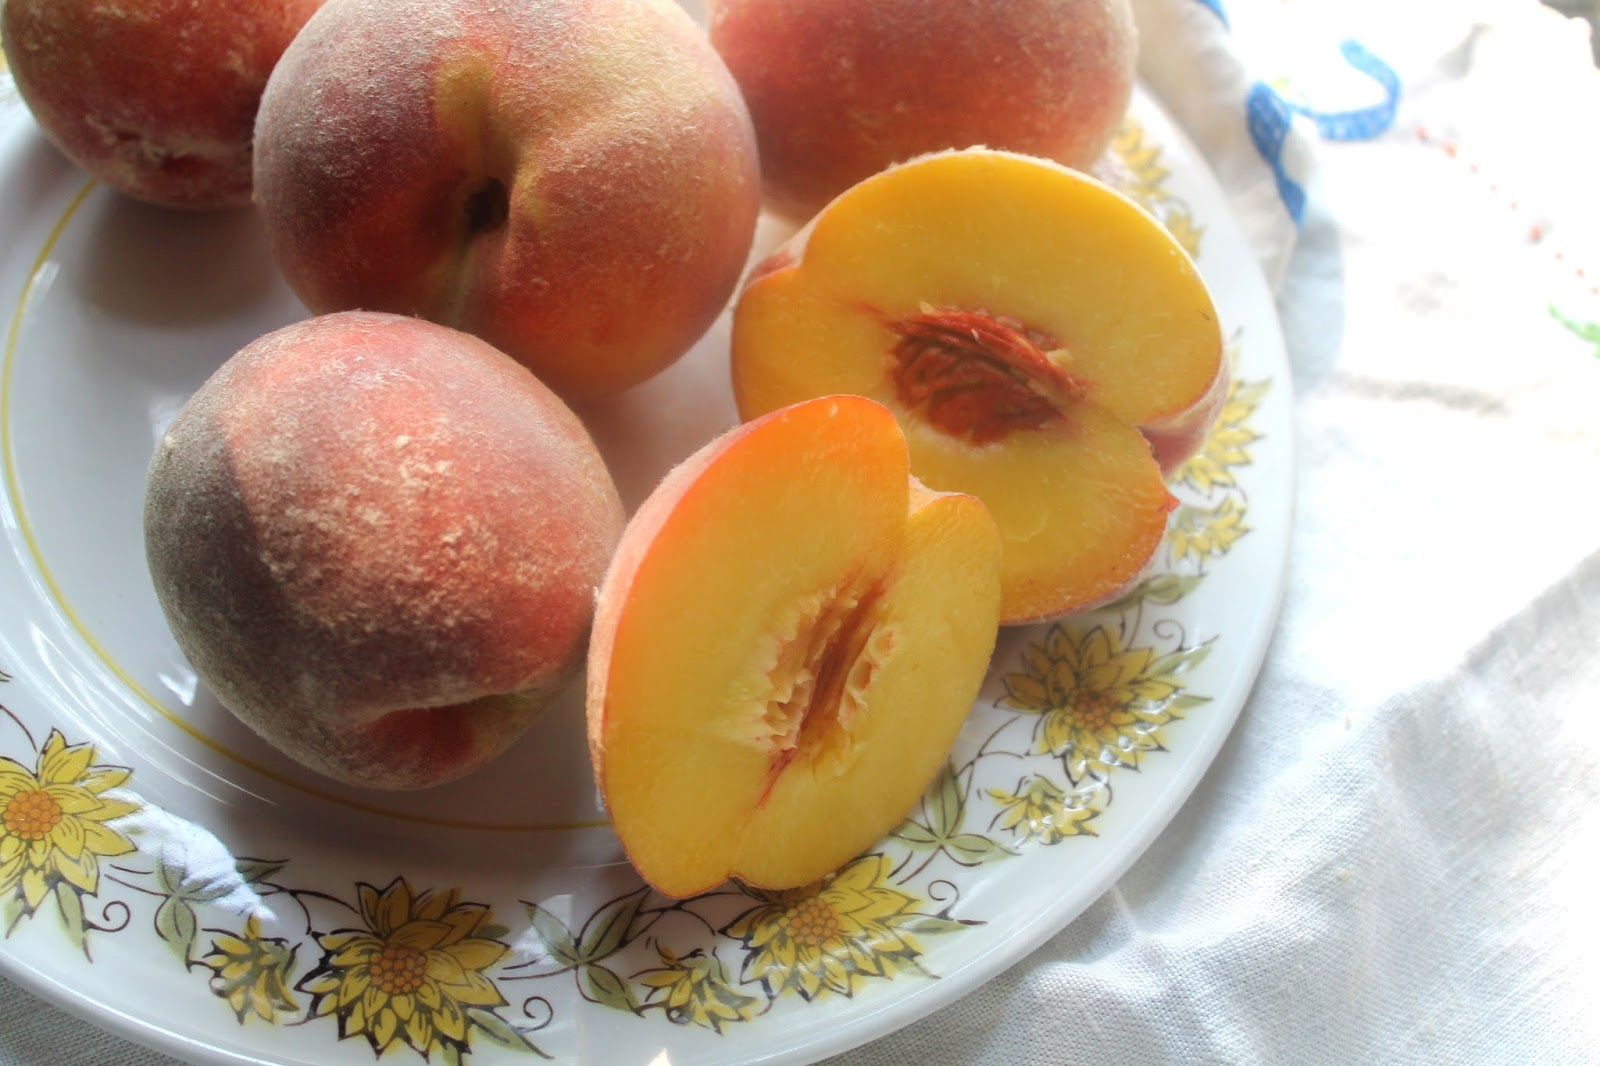 If you don't have fresh peaches, frozen will work.